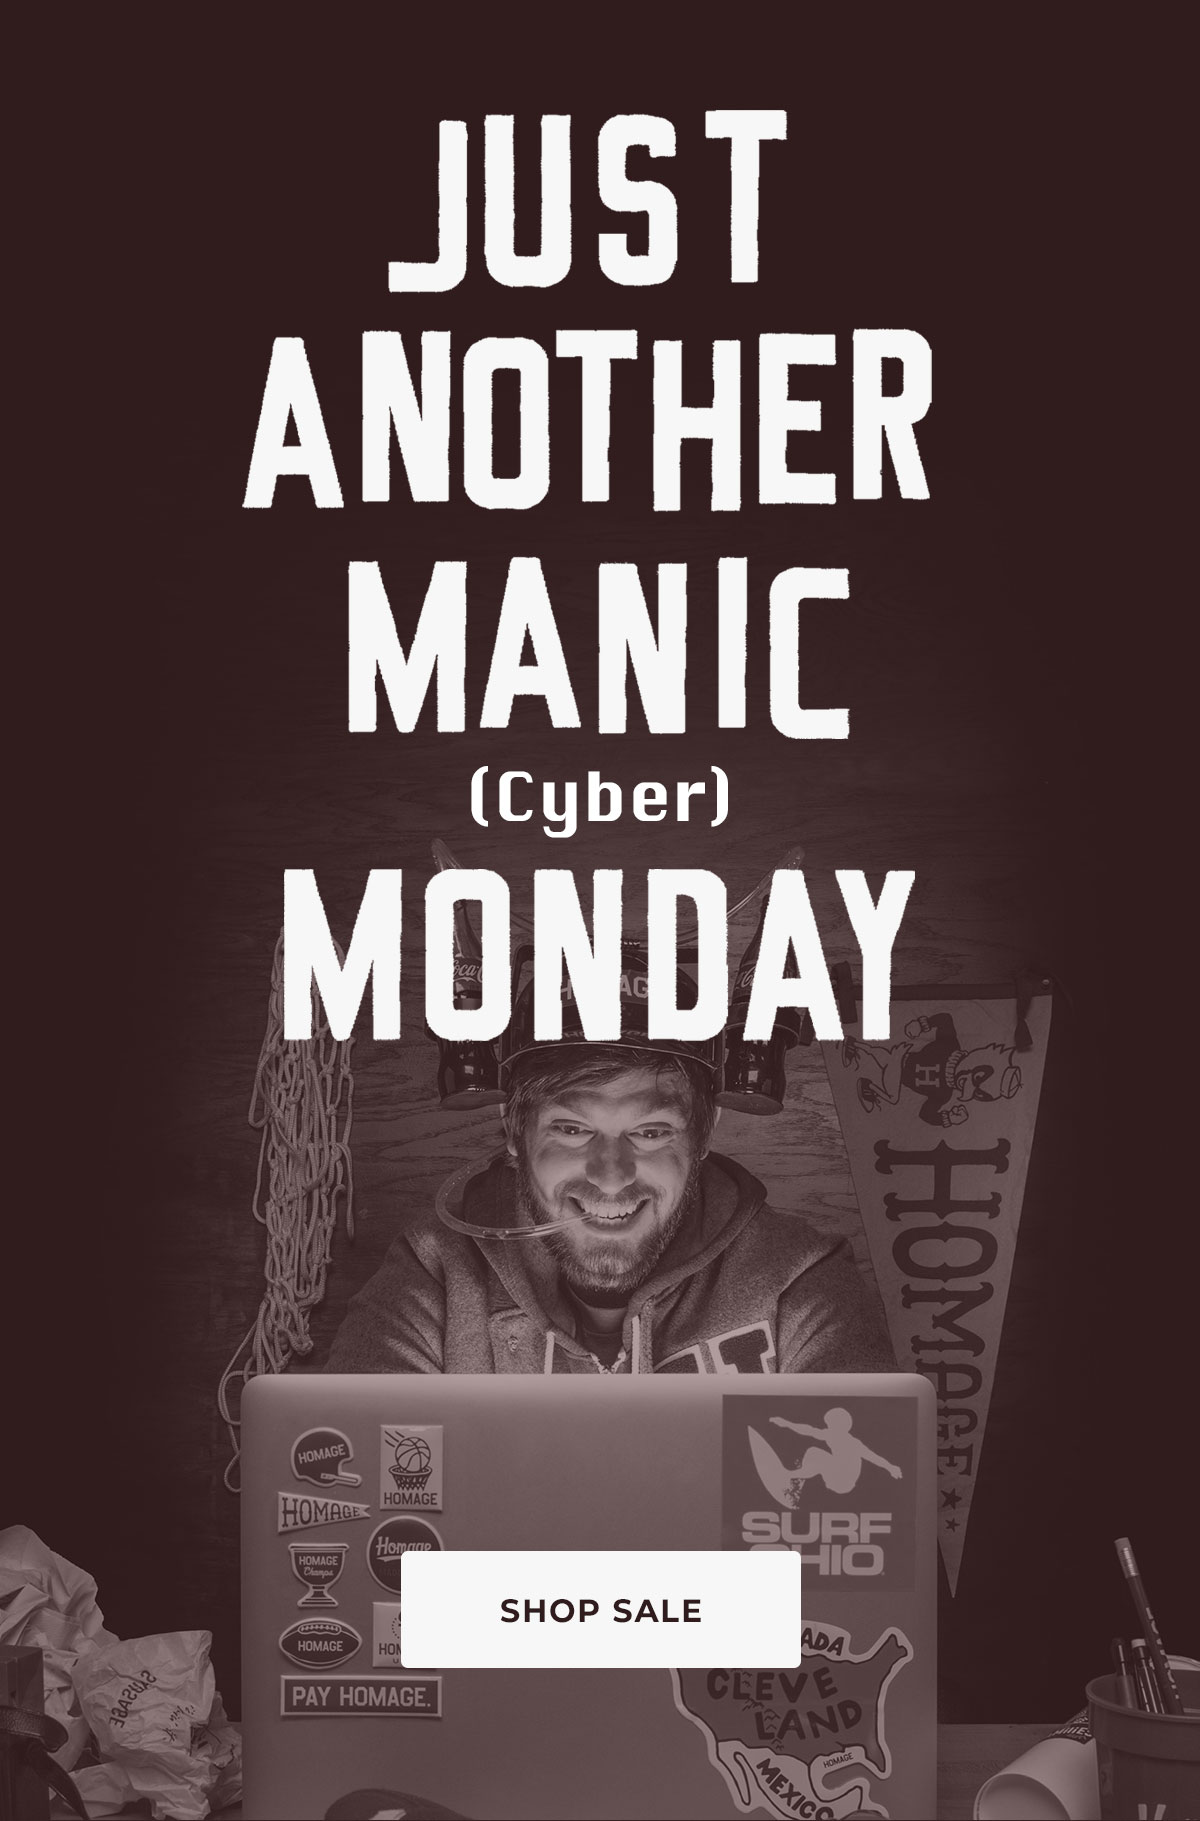 Just another manic Cyber Monday.